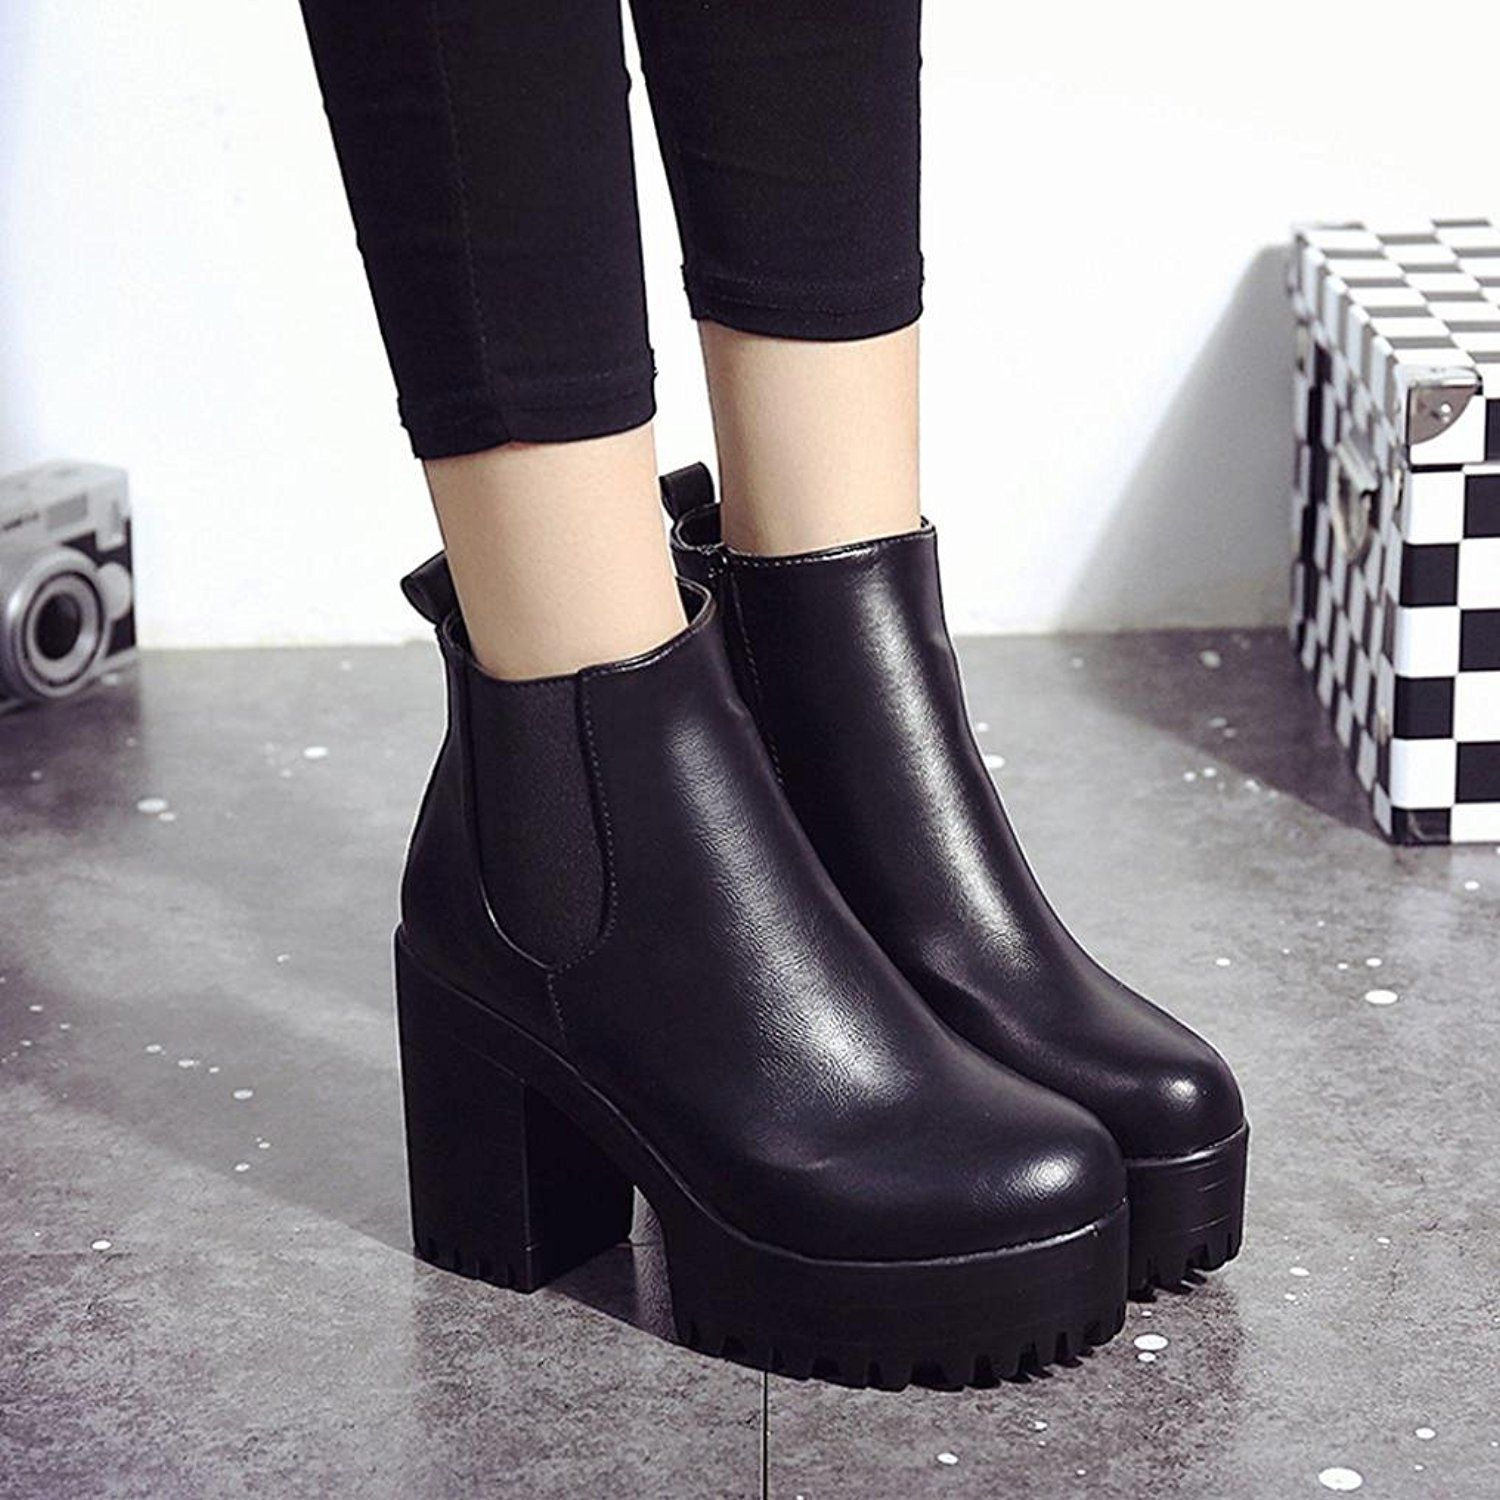 Women's Fashion Cool Round Toe Block Mid Heel Dress Lace Up Ankle Martin Boots Booties Shoes